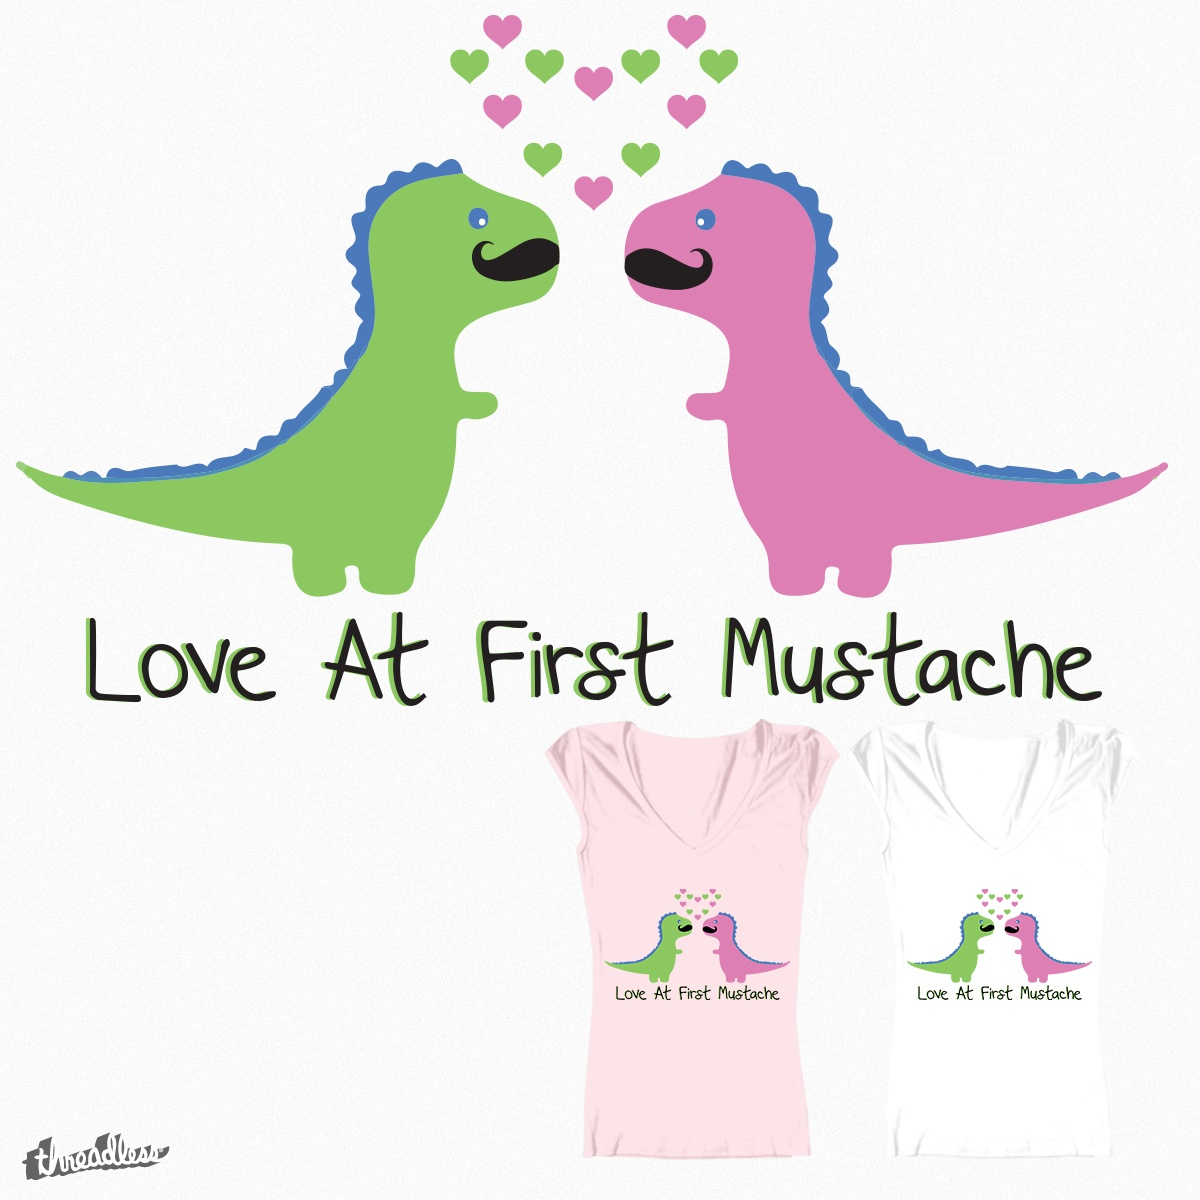 LOVE AT FIRST MUSTACHE